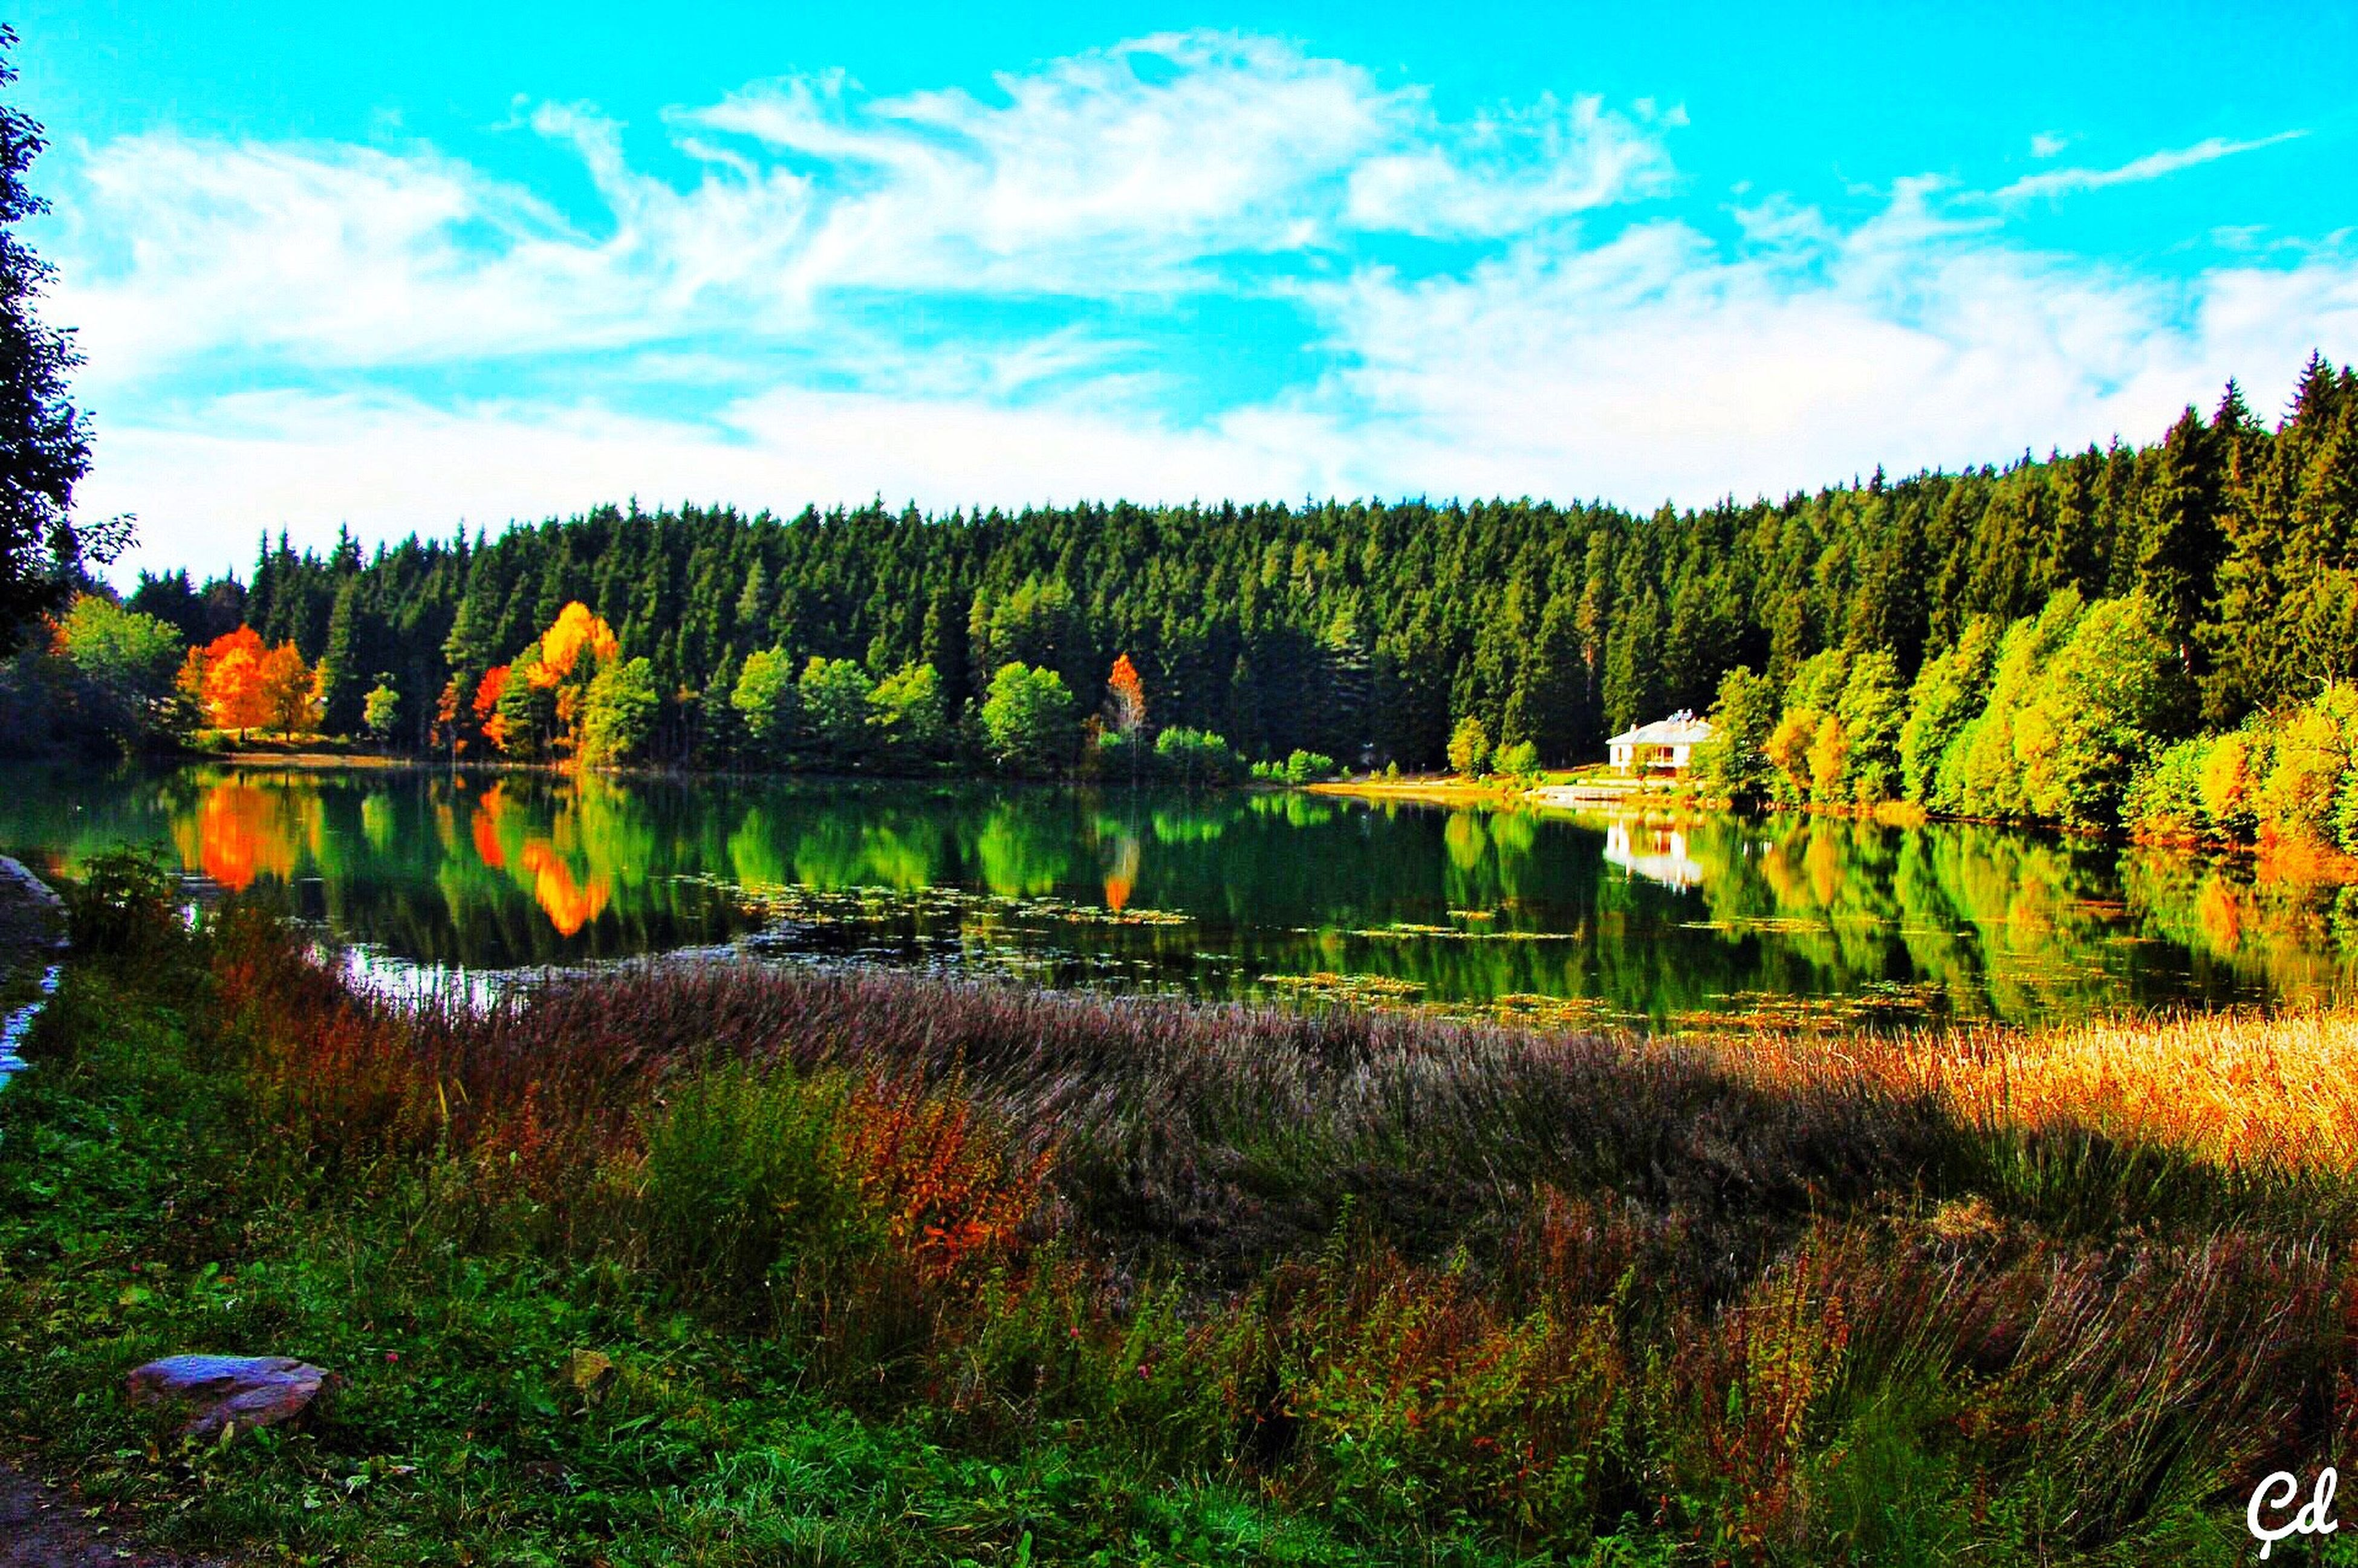 water, tranquil scene, reflection, lake, scenics, tranquility, beauty in nature, tree, sky, nature, non-urban scene, pond, landscape, remote, idyllic, calm, countryside, growth, day, plant, blue, multi colored, solitude, standing water, cloud - sky, surrounding, green color, no people, majestic, green, lakeside